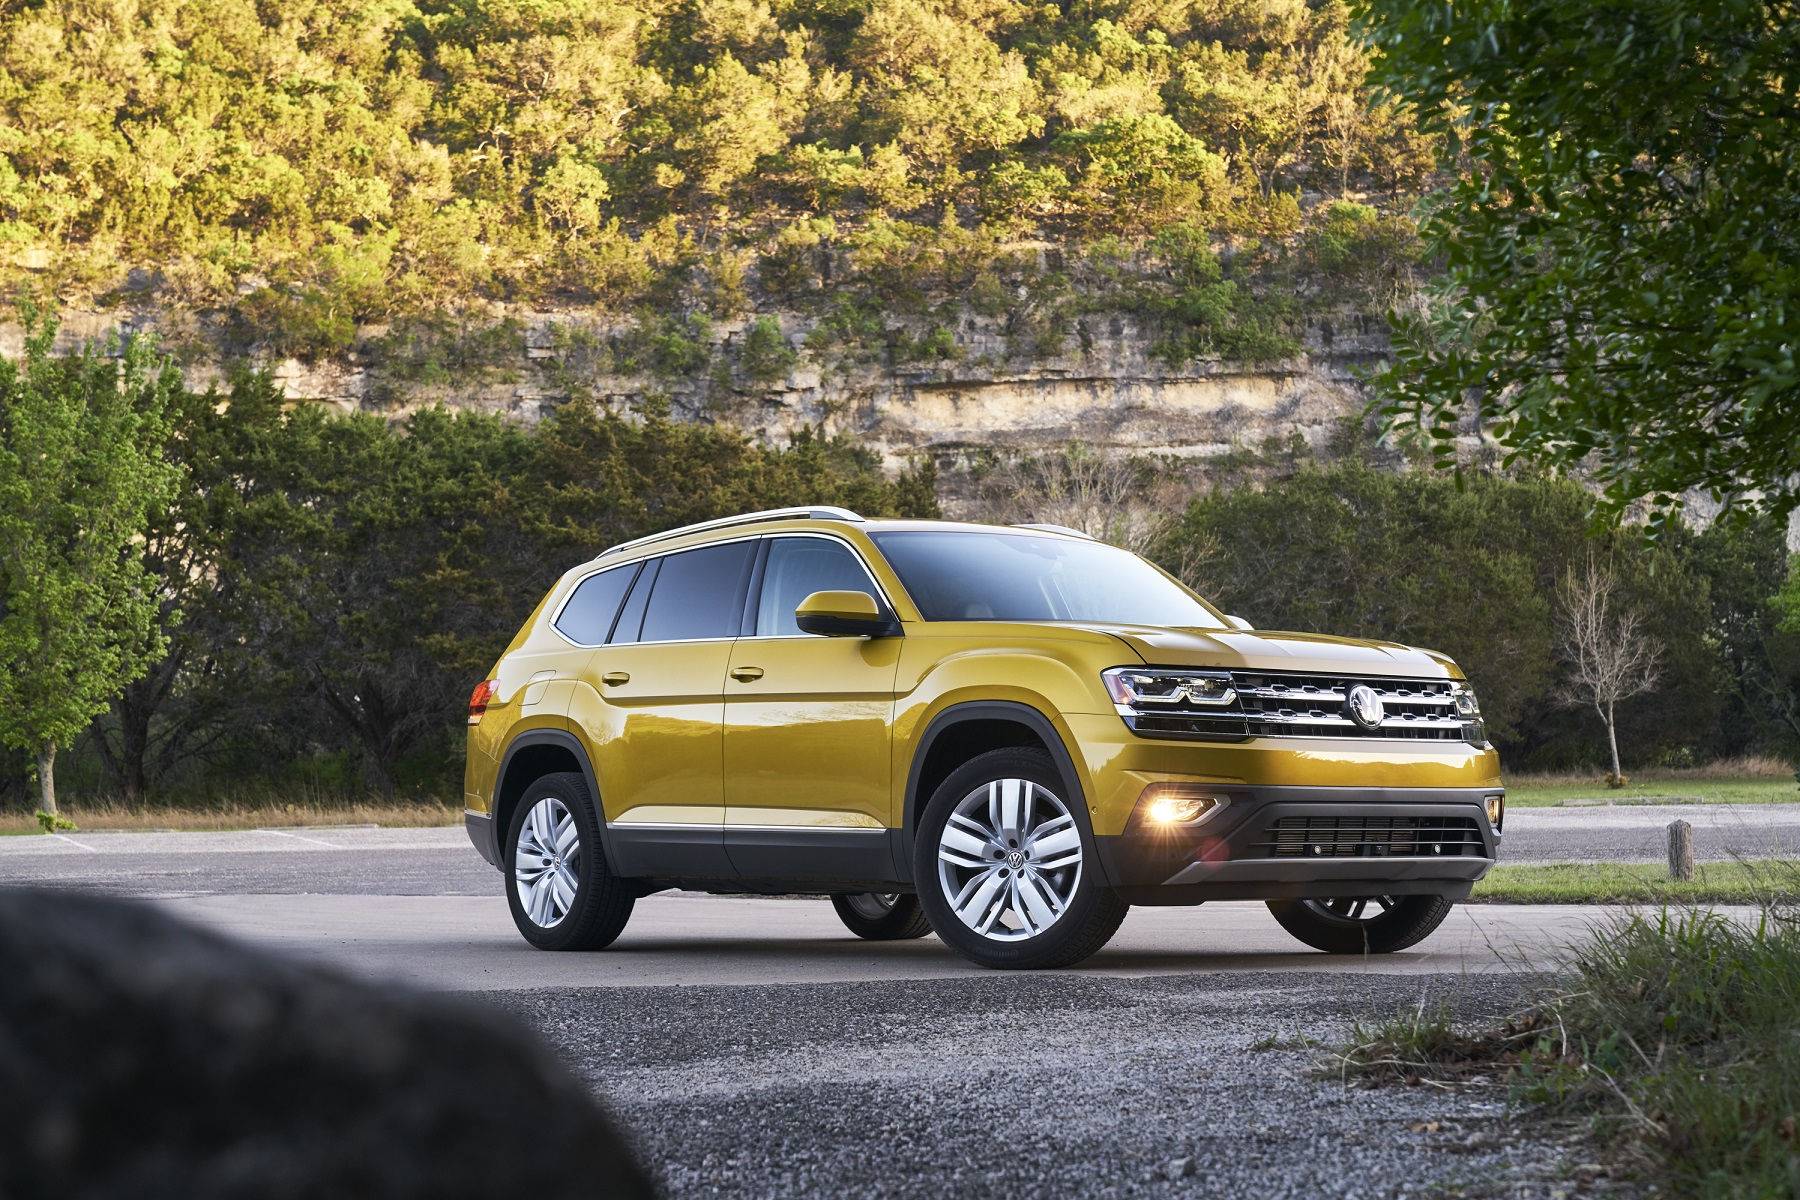 Volkswagen Atlas: The New VW 2018 SUV - New on Wheels - - GrooveCar